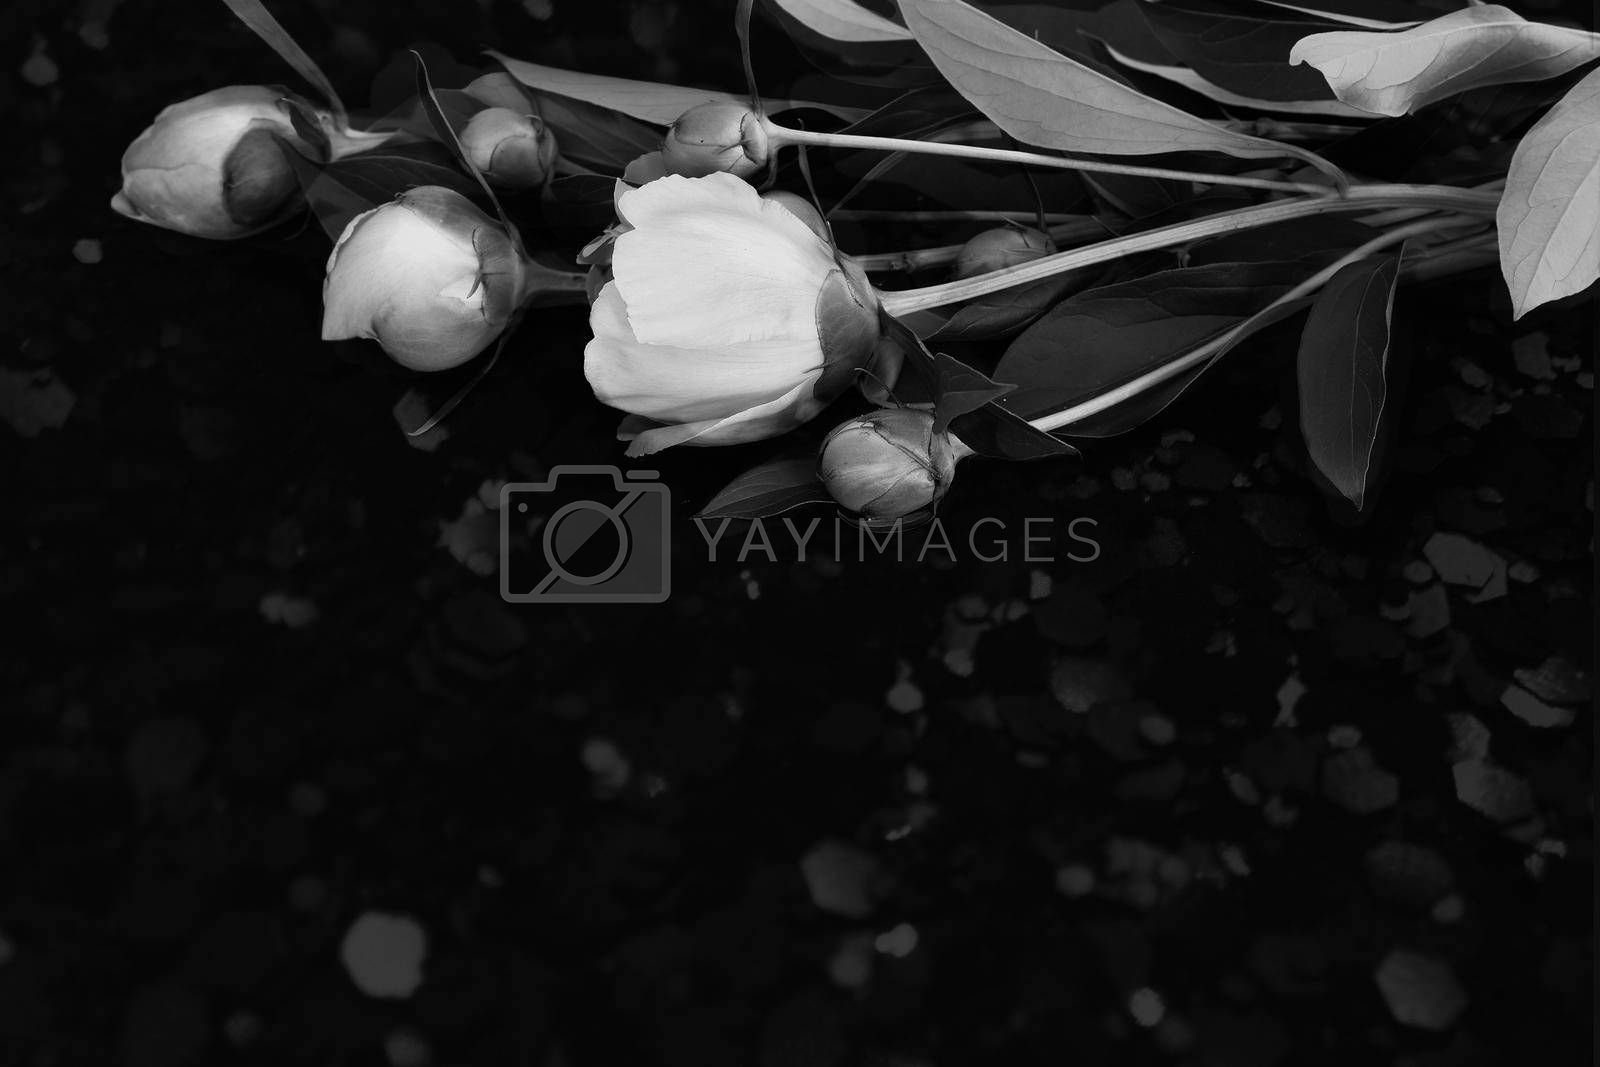 Beautiful pink flowers and buds of peonies surrounded by green leaves on a black background. Black and white image.